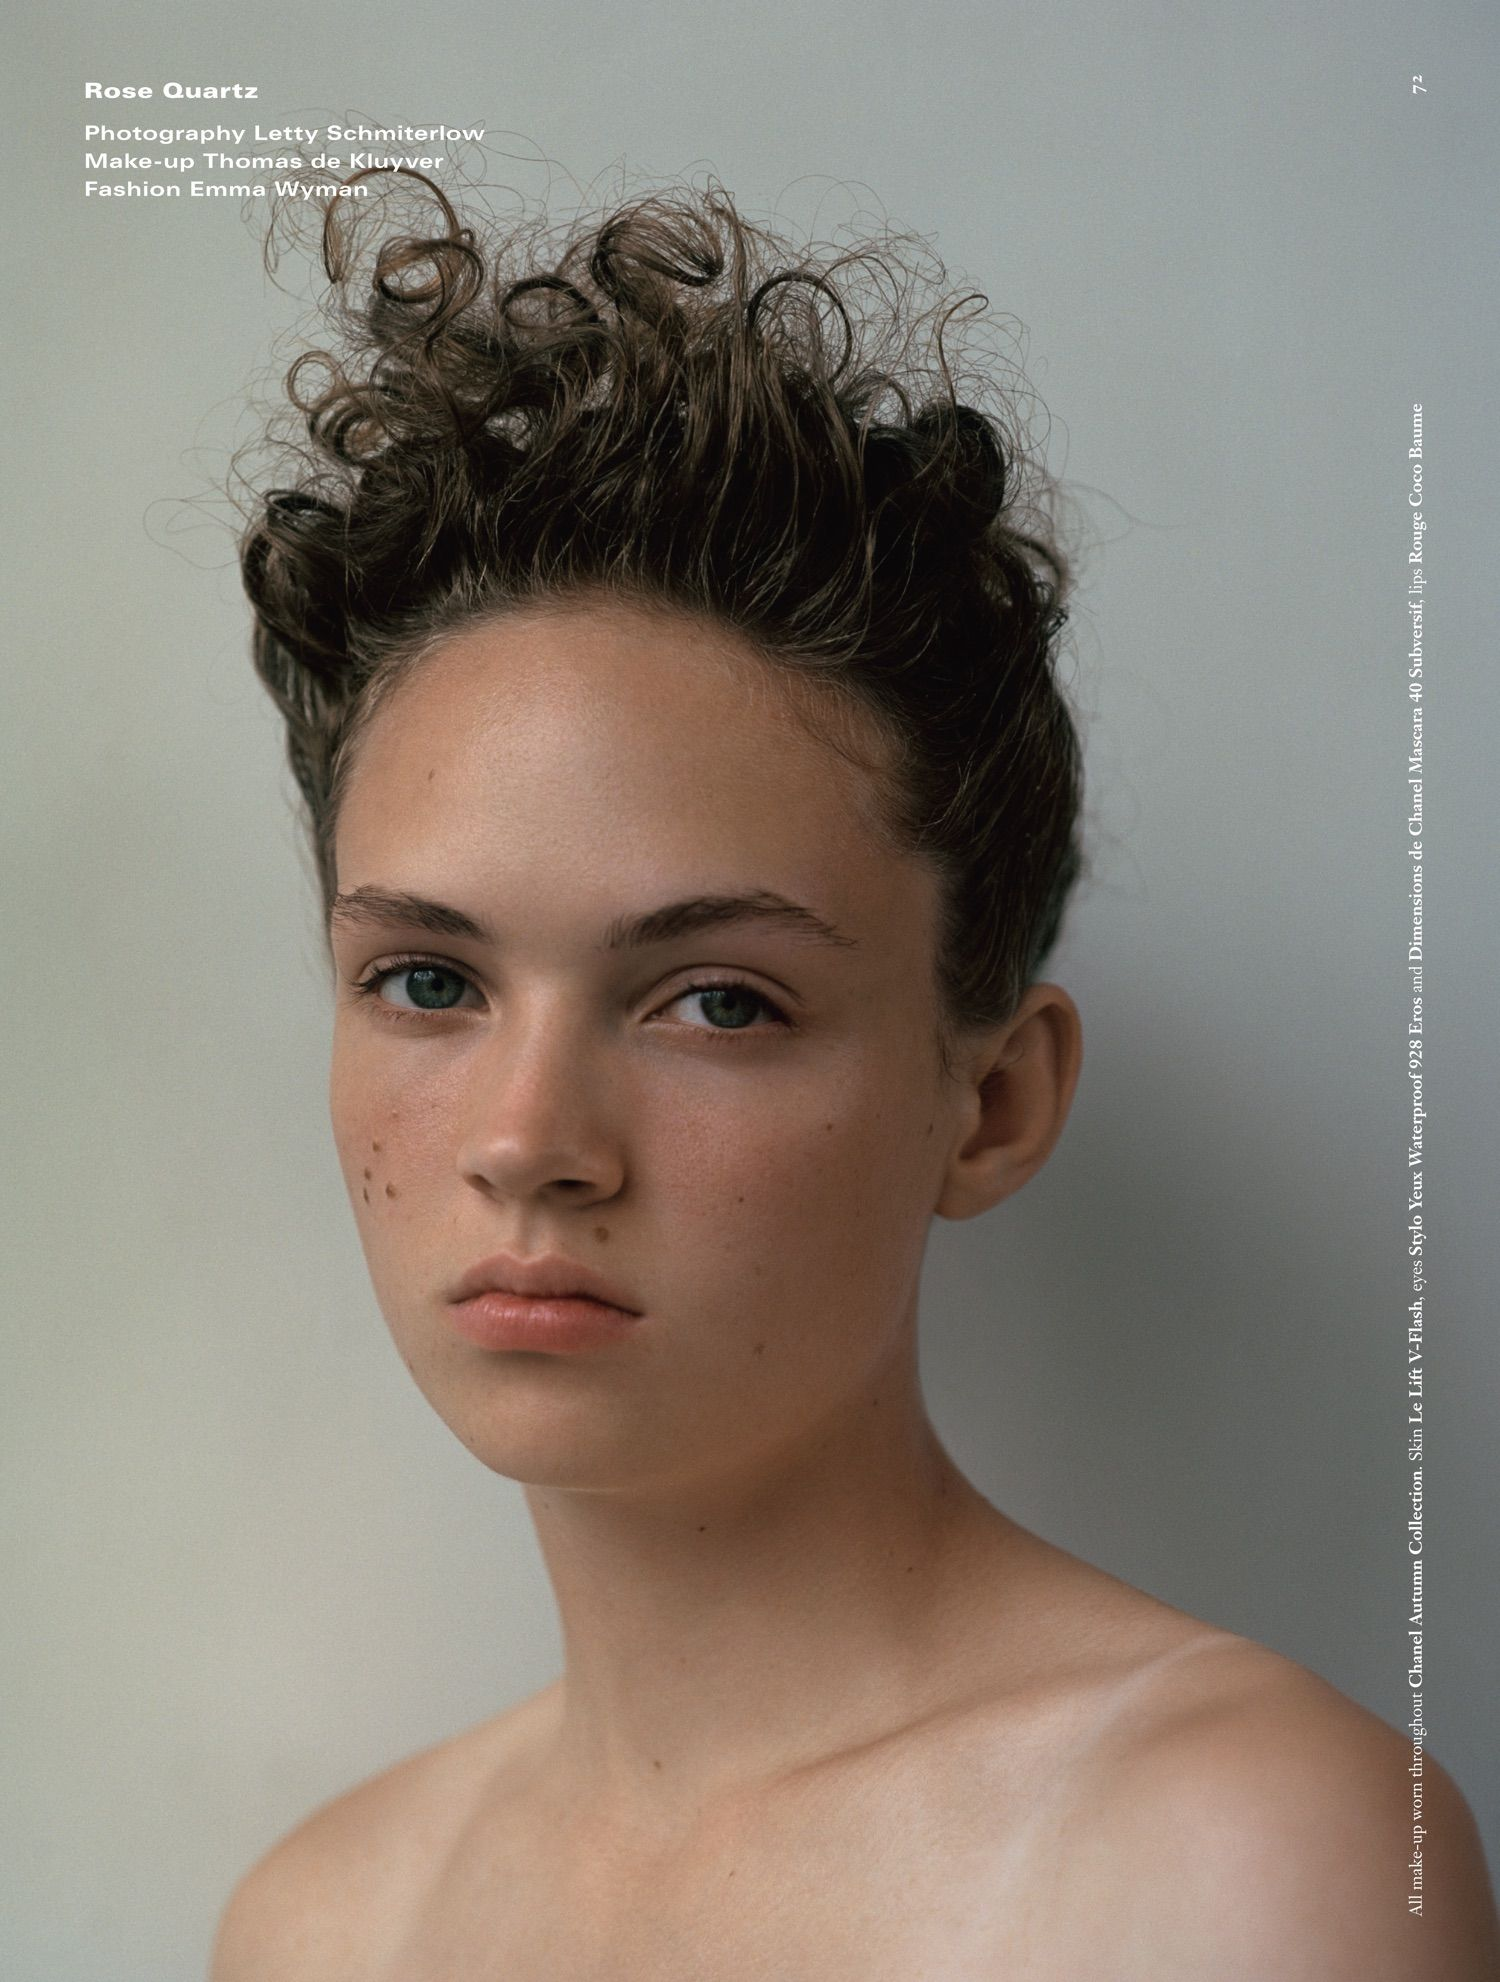 cbcc885e302946 Adrienne Juliger by Letty Schmiterlow for Dazed Magazine Fall 2016 ...